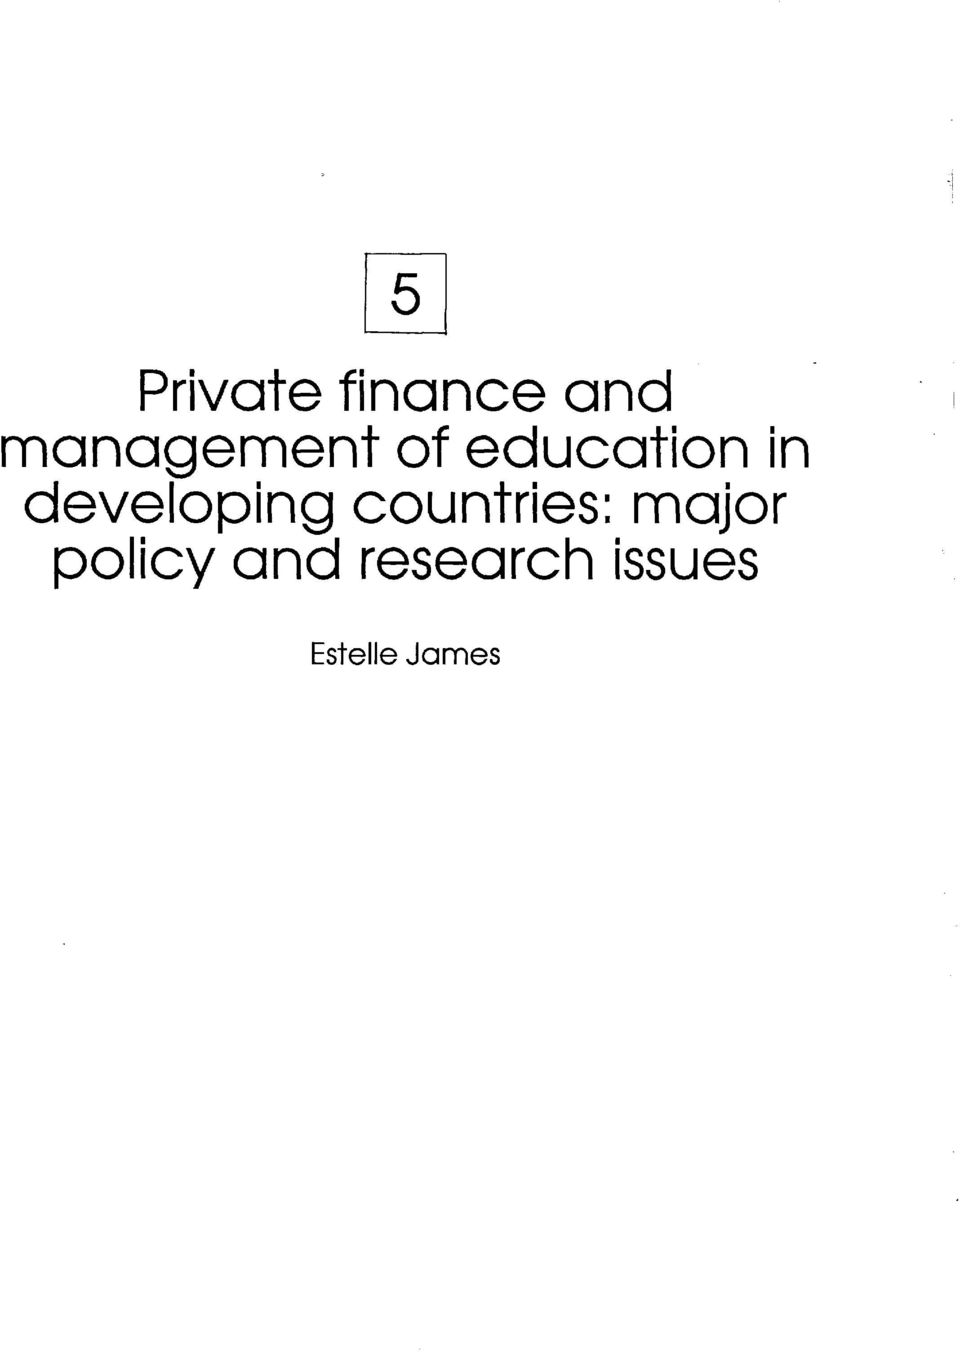 developing countries: major